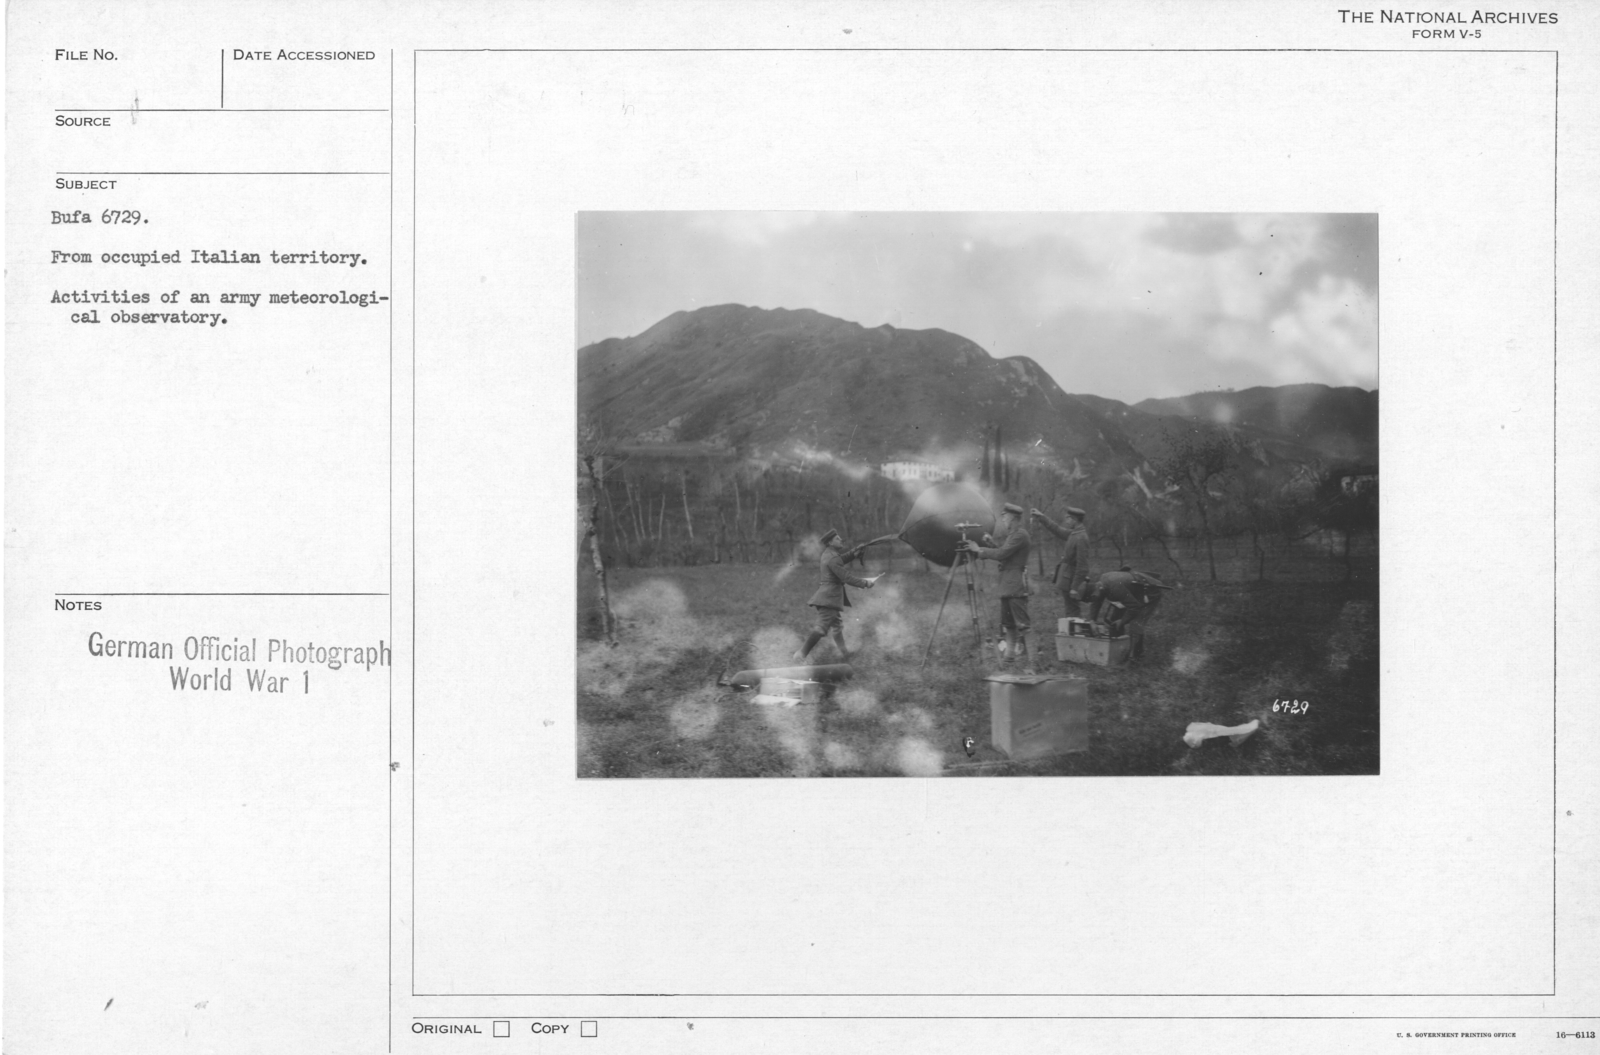 From occupied Italian territory. Activities of an army meteorological observatory